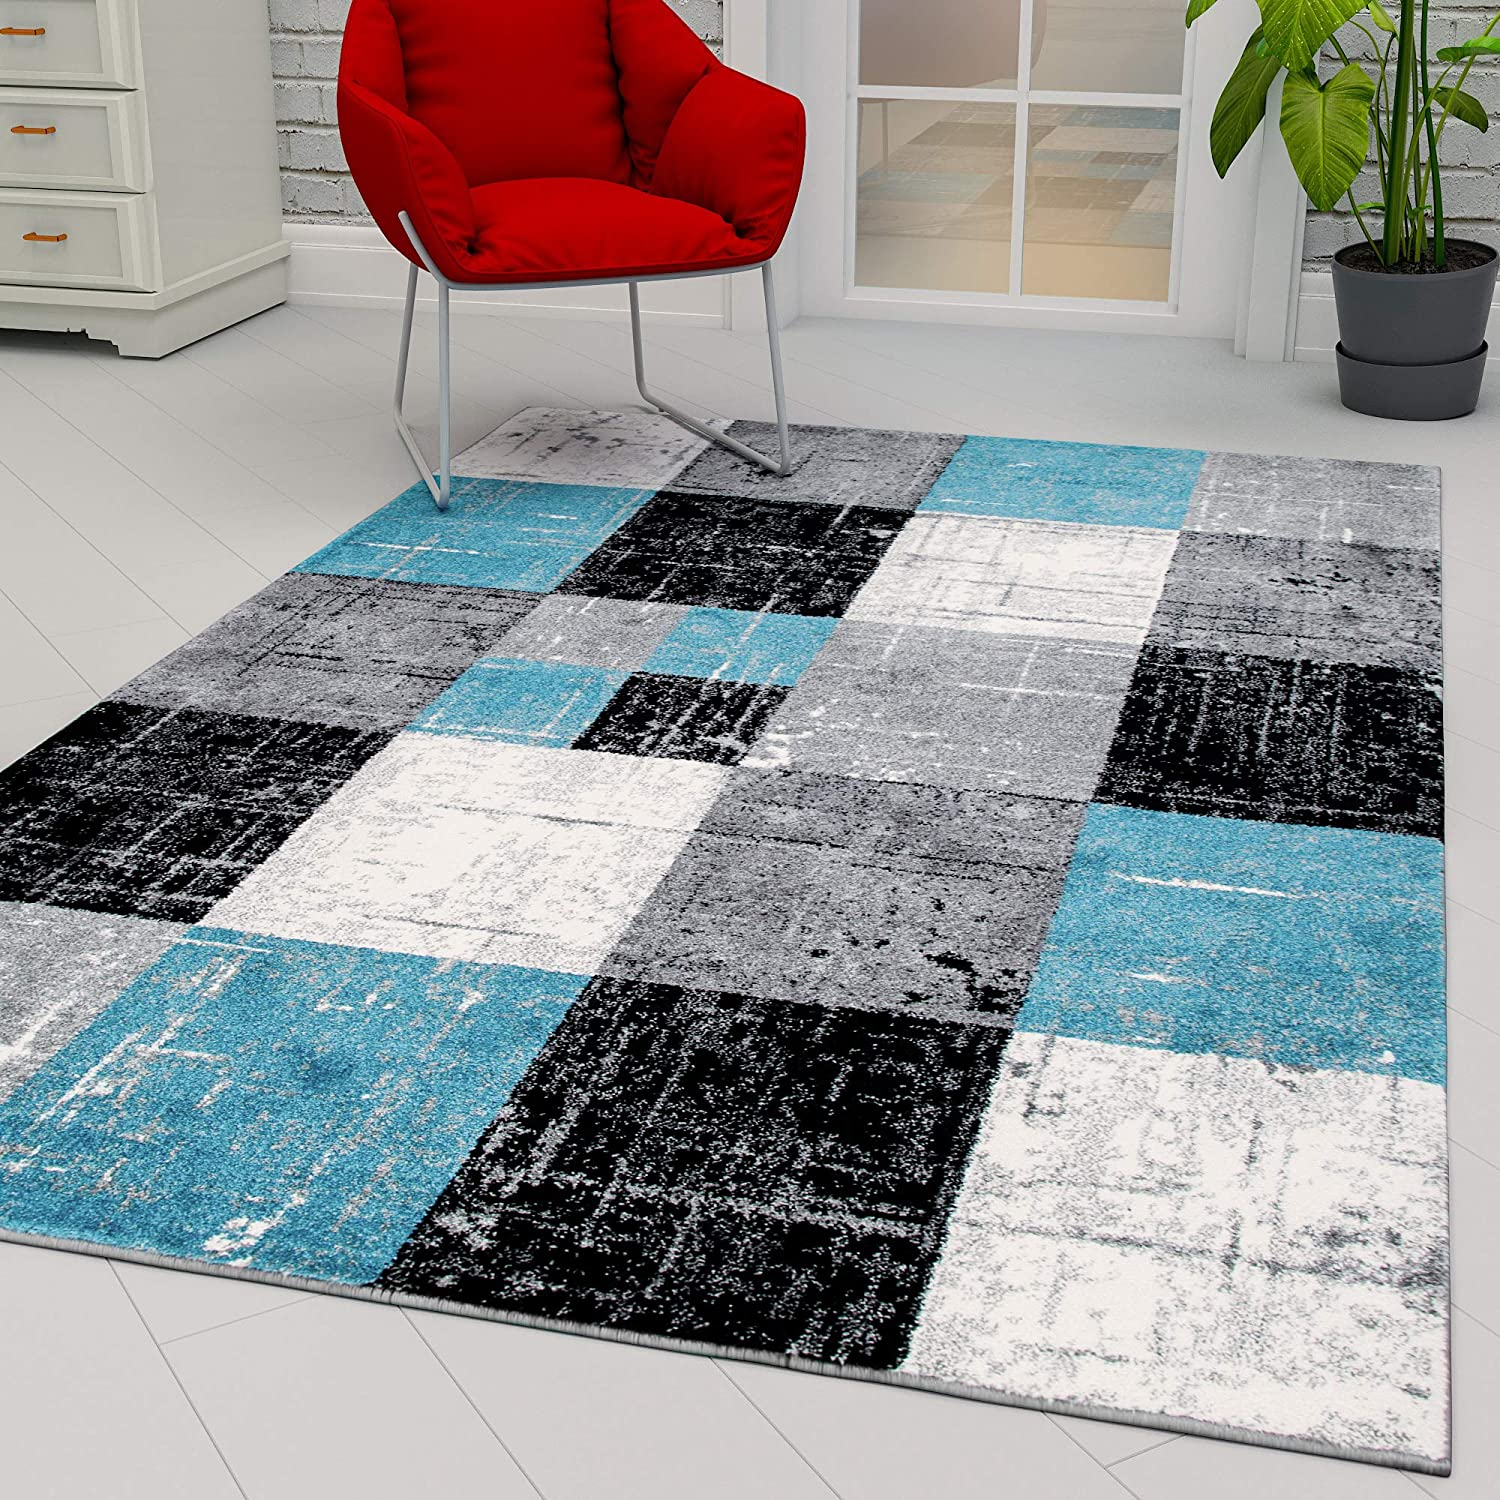 Ottomanson City Collection Modern Area Rug Contemporary Sculpted Effect Faded Geometric Grey Black Rug 5x7 5 3 X 7 3 5 3 X 7 3 Blue Bgrey Checkered Furniture Decor